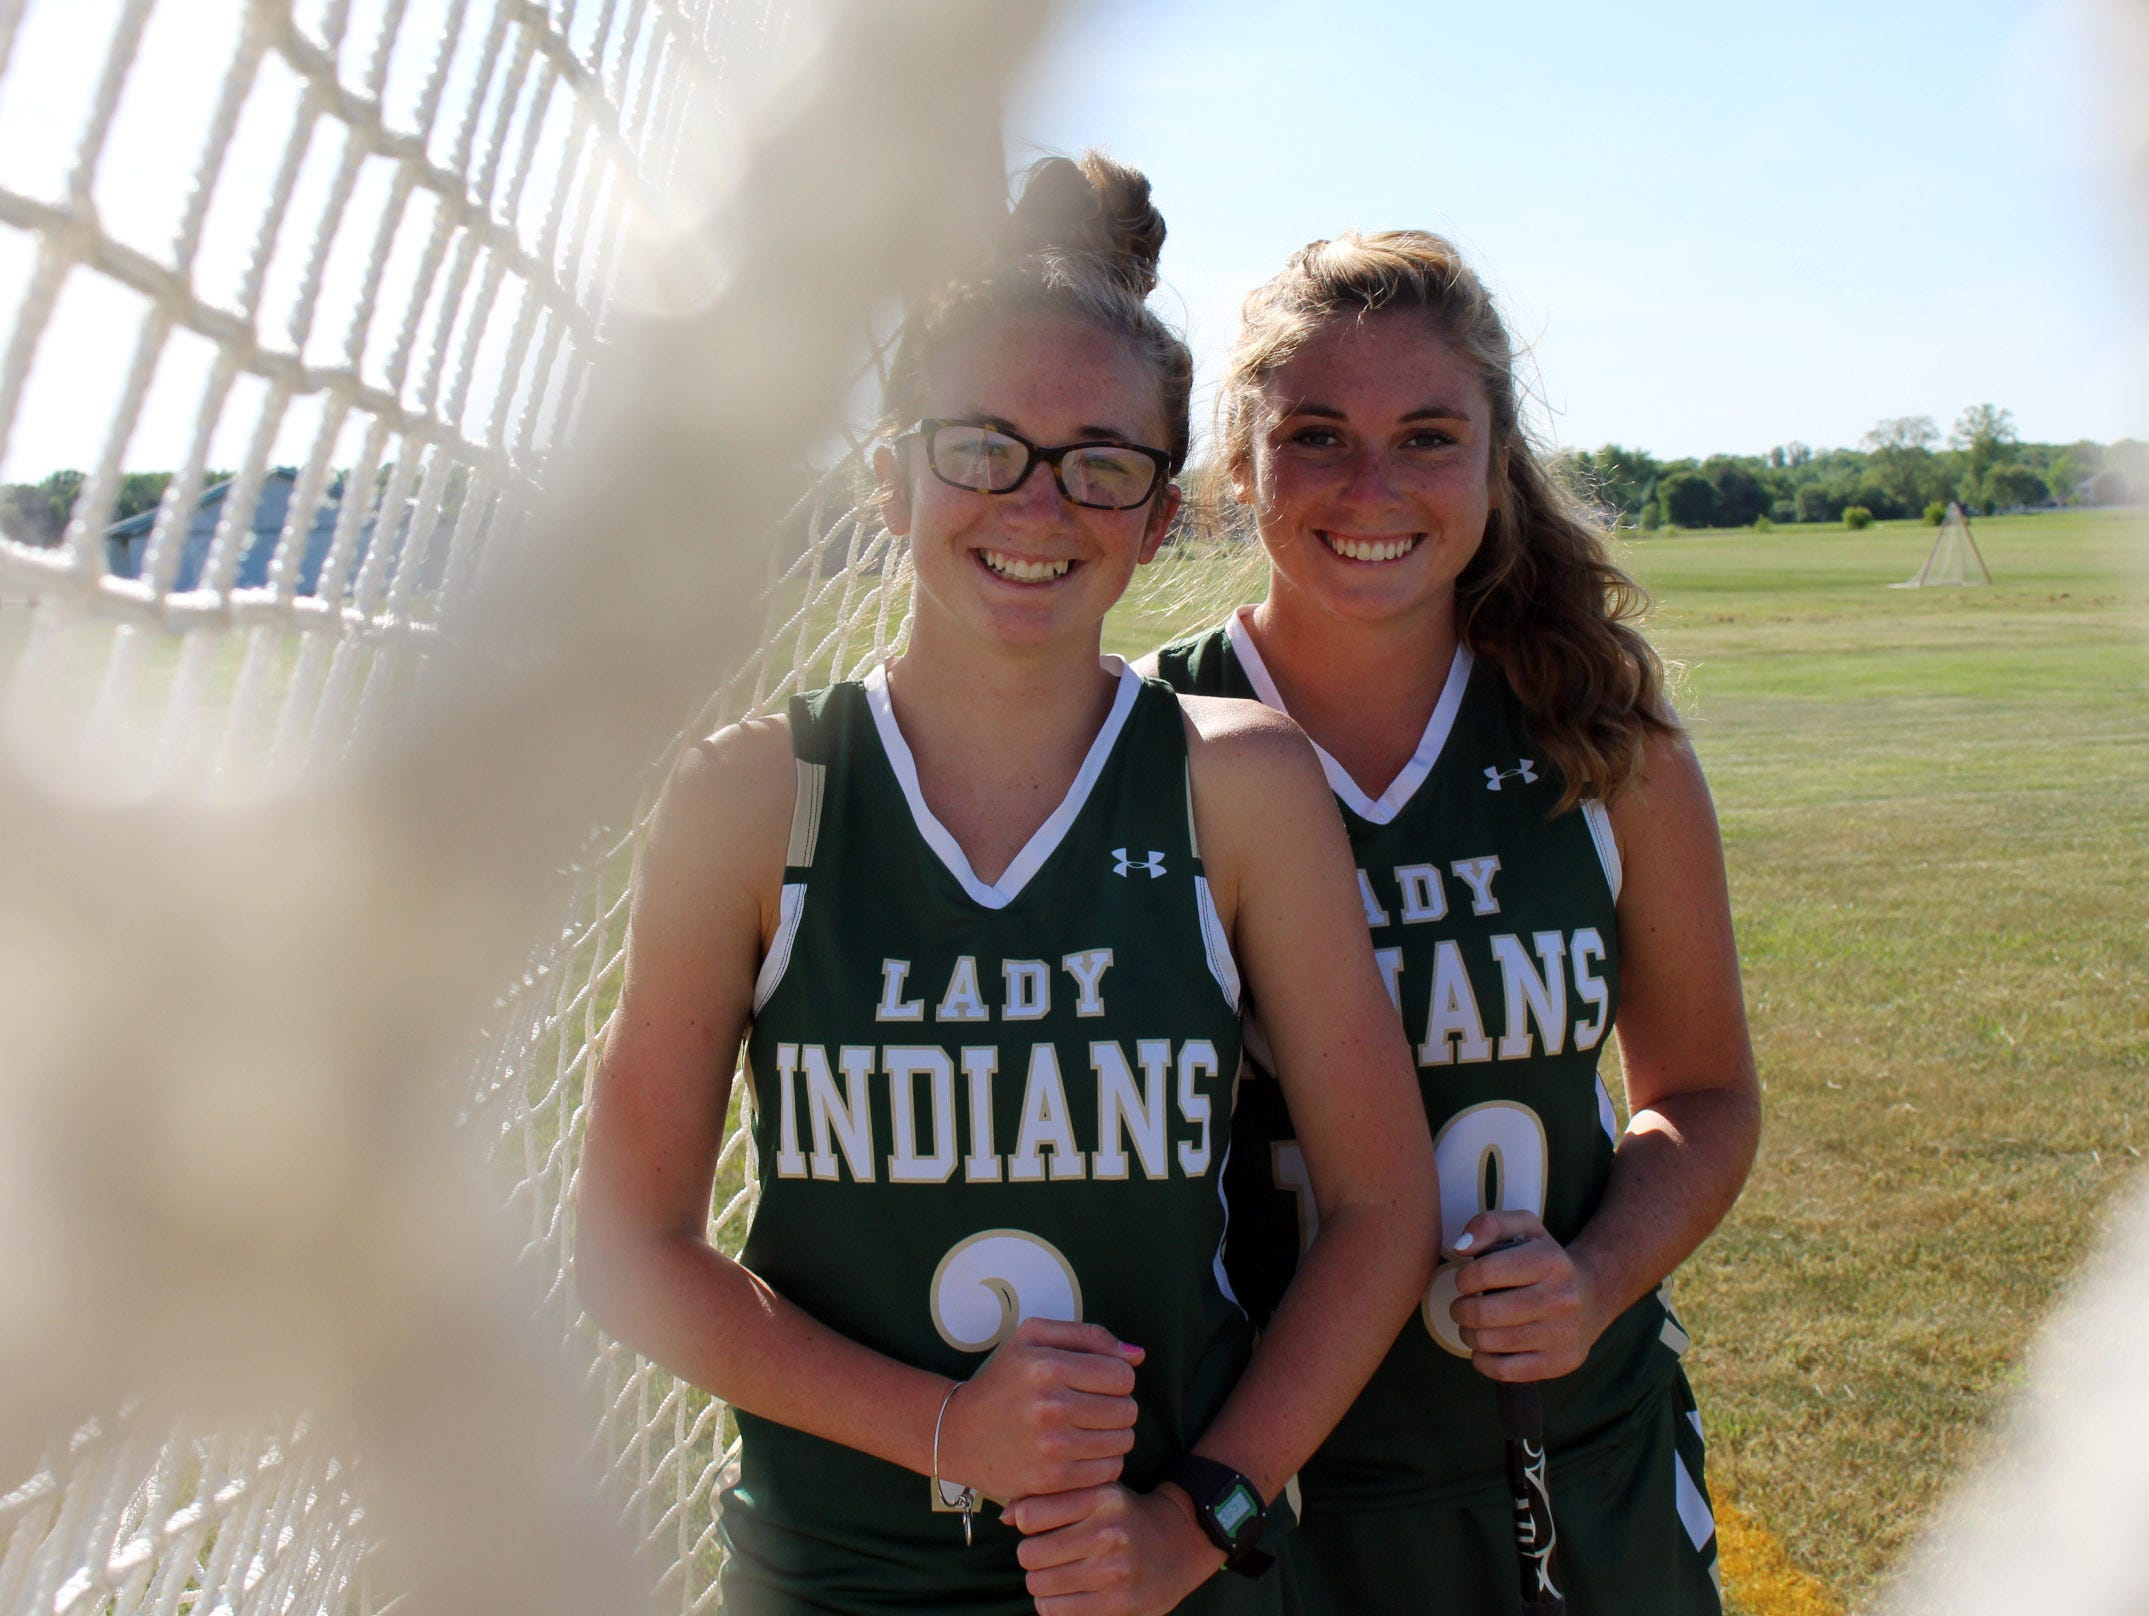 Lacrosse at Indian River High School gave the Allison sisters, Kealey and Maggie, something that they never thought would happen — playing on the same lacrosse team.